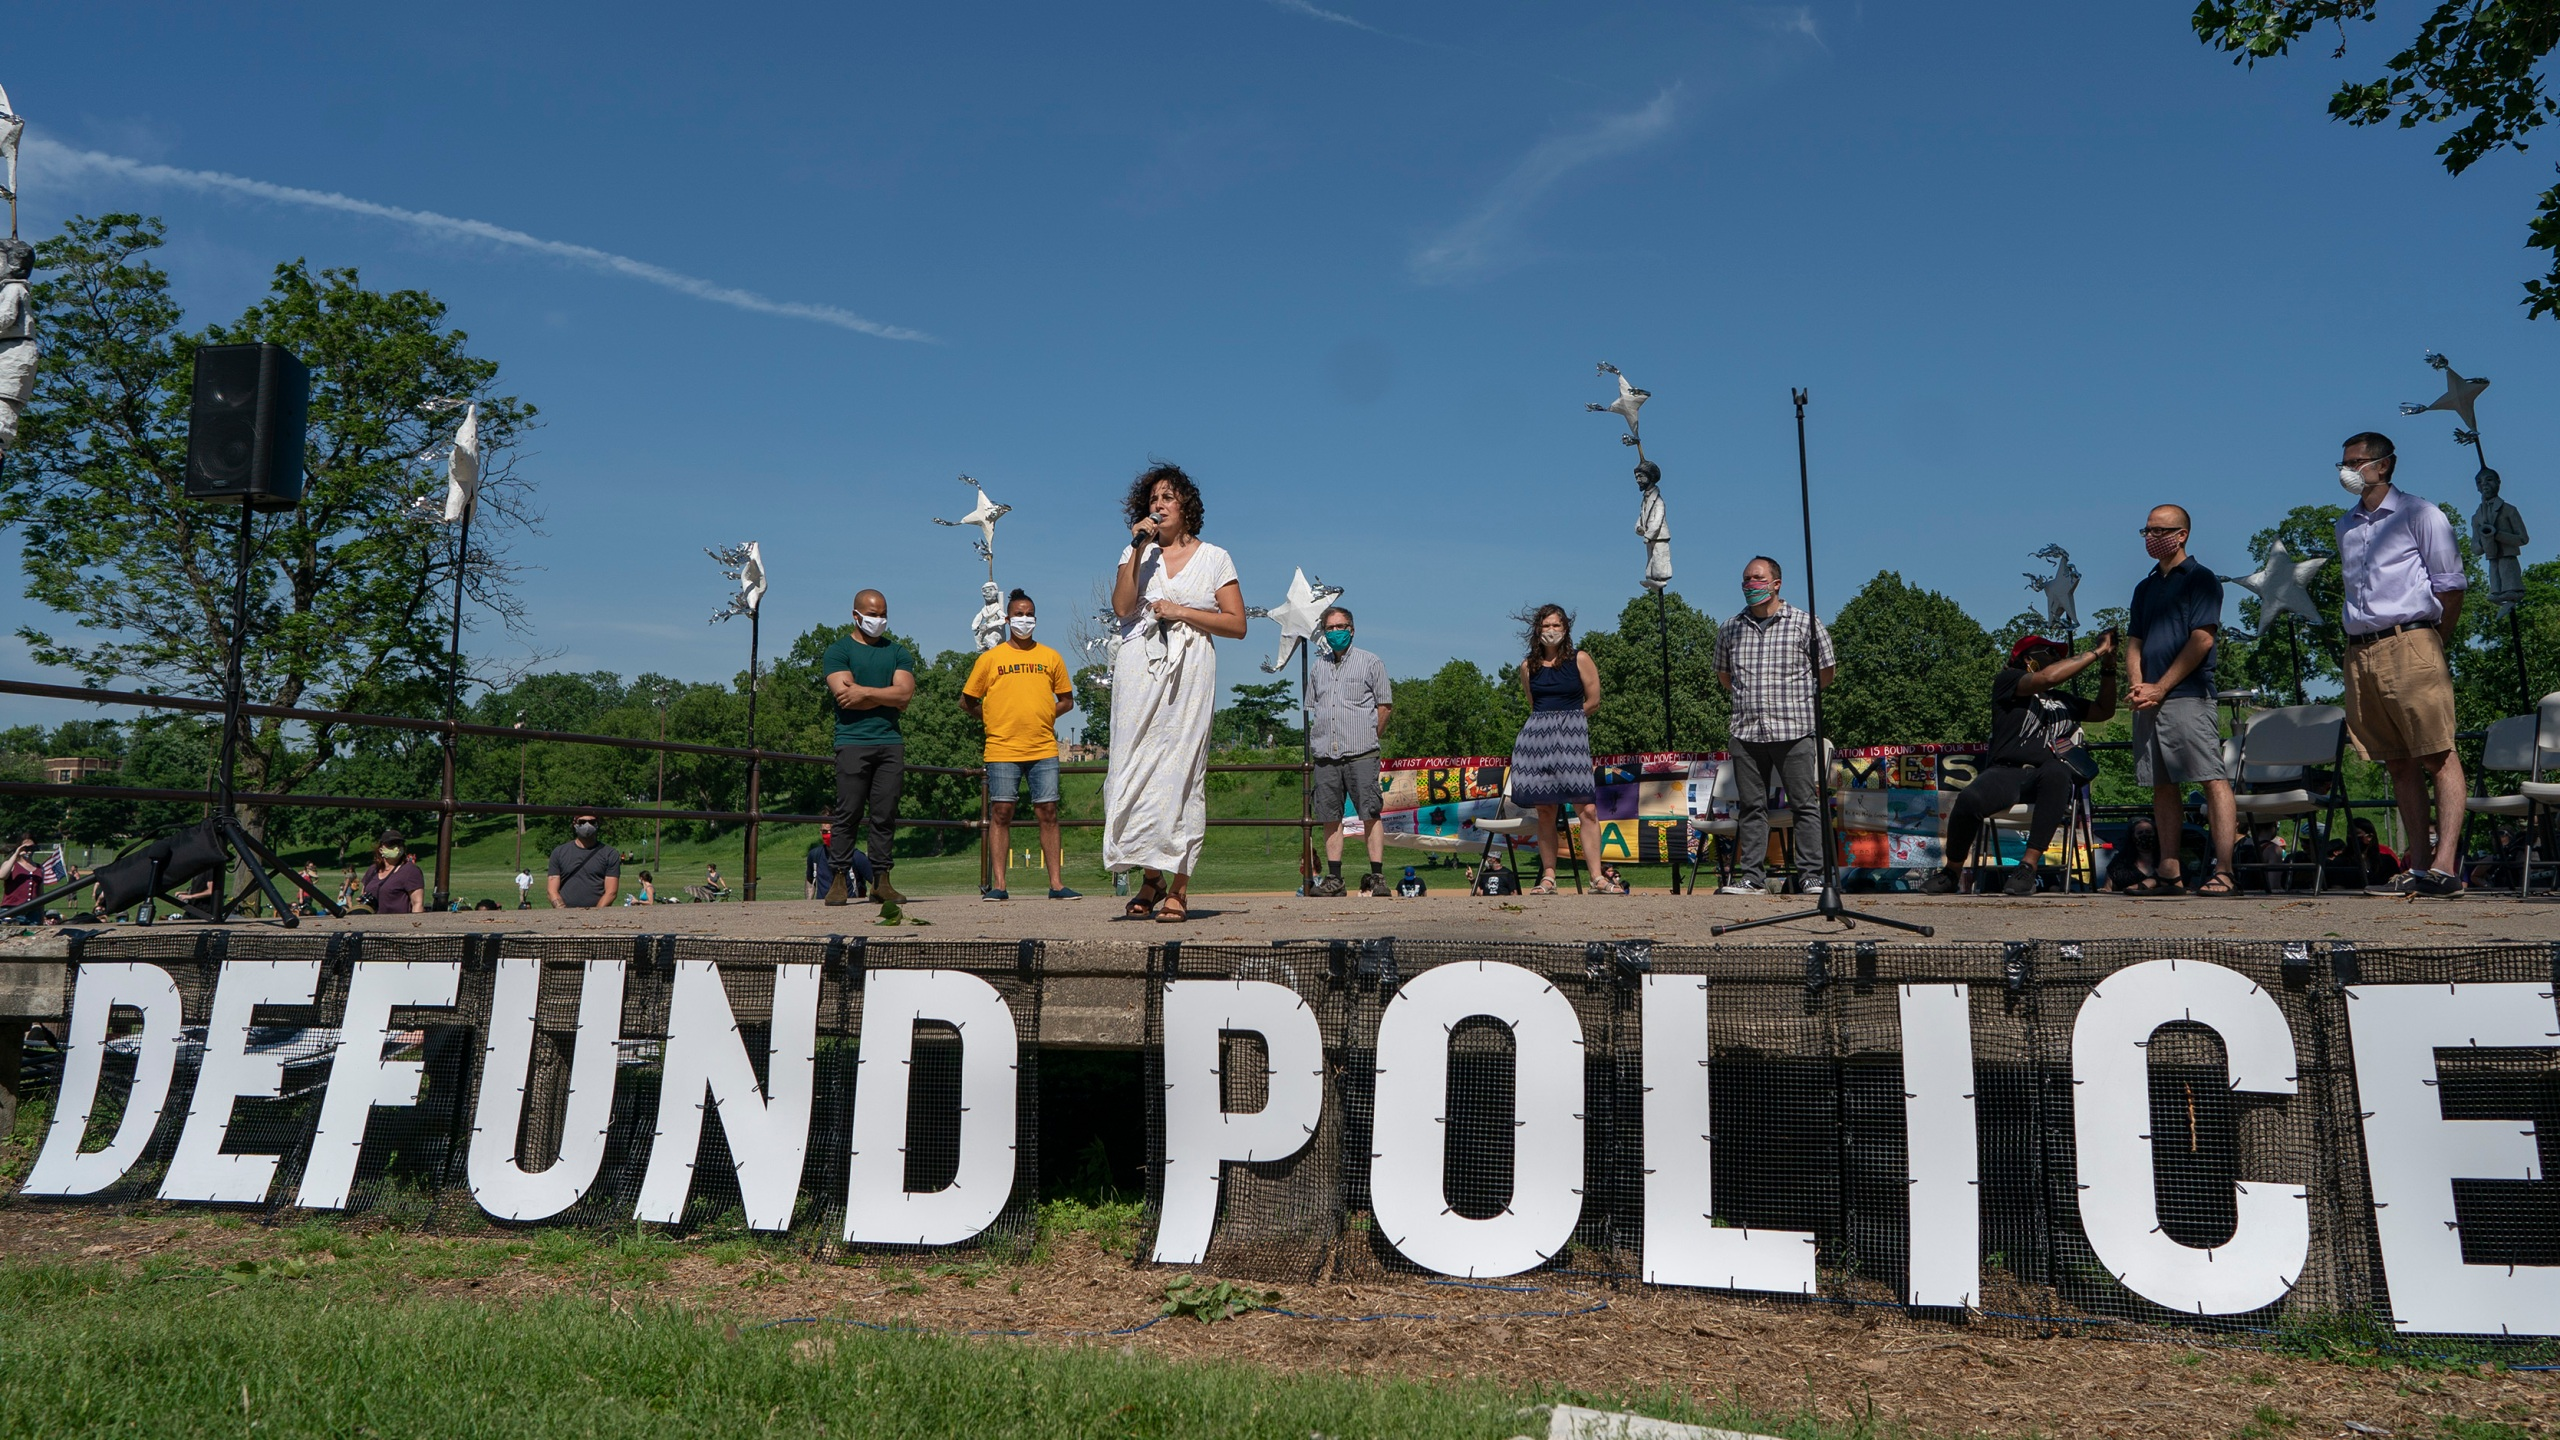 """In this June 7, 2020, file photo, Alondra Cano, a city council member, speaks during """"The Path Forward"""" meeting at Powderhorn Park in Minneapolis, which was organized to talk about the defunding of the Minneapolis Police Department. (Jerry Holt/Star Tribune via Associated Press)"""